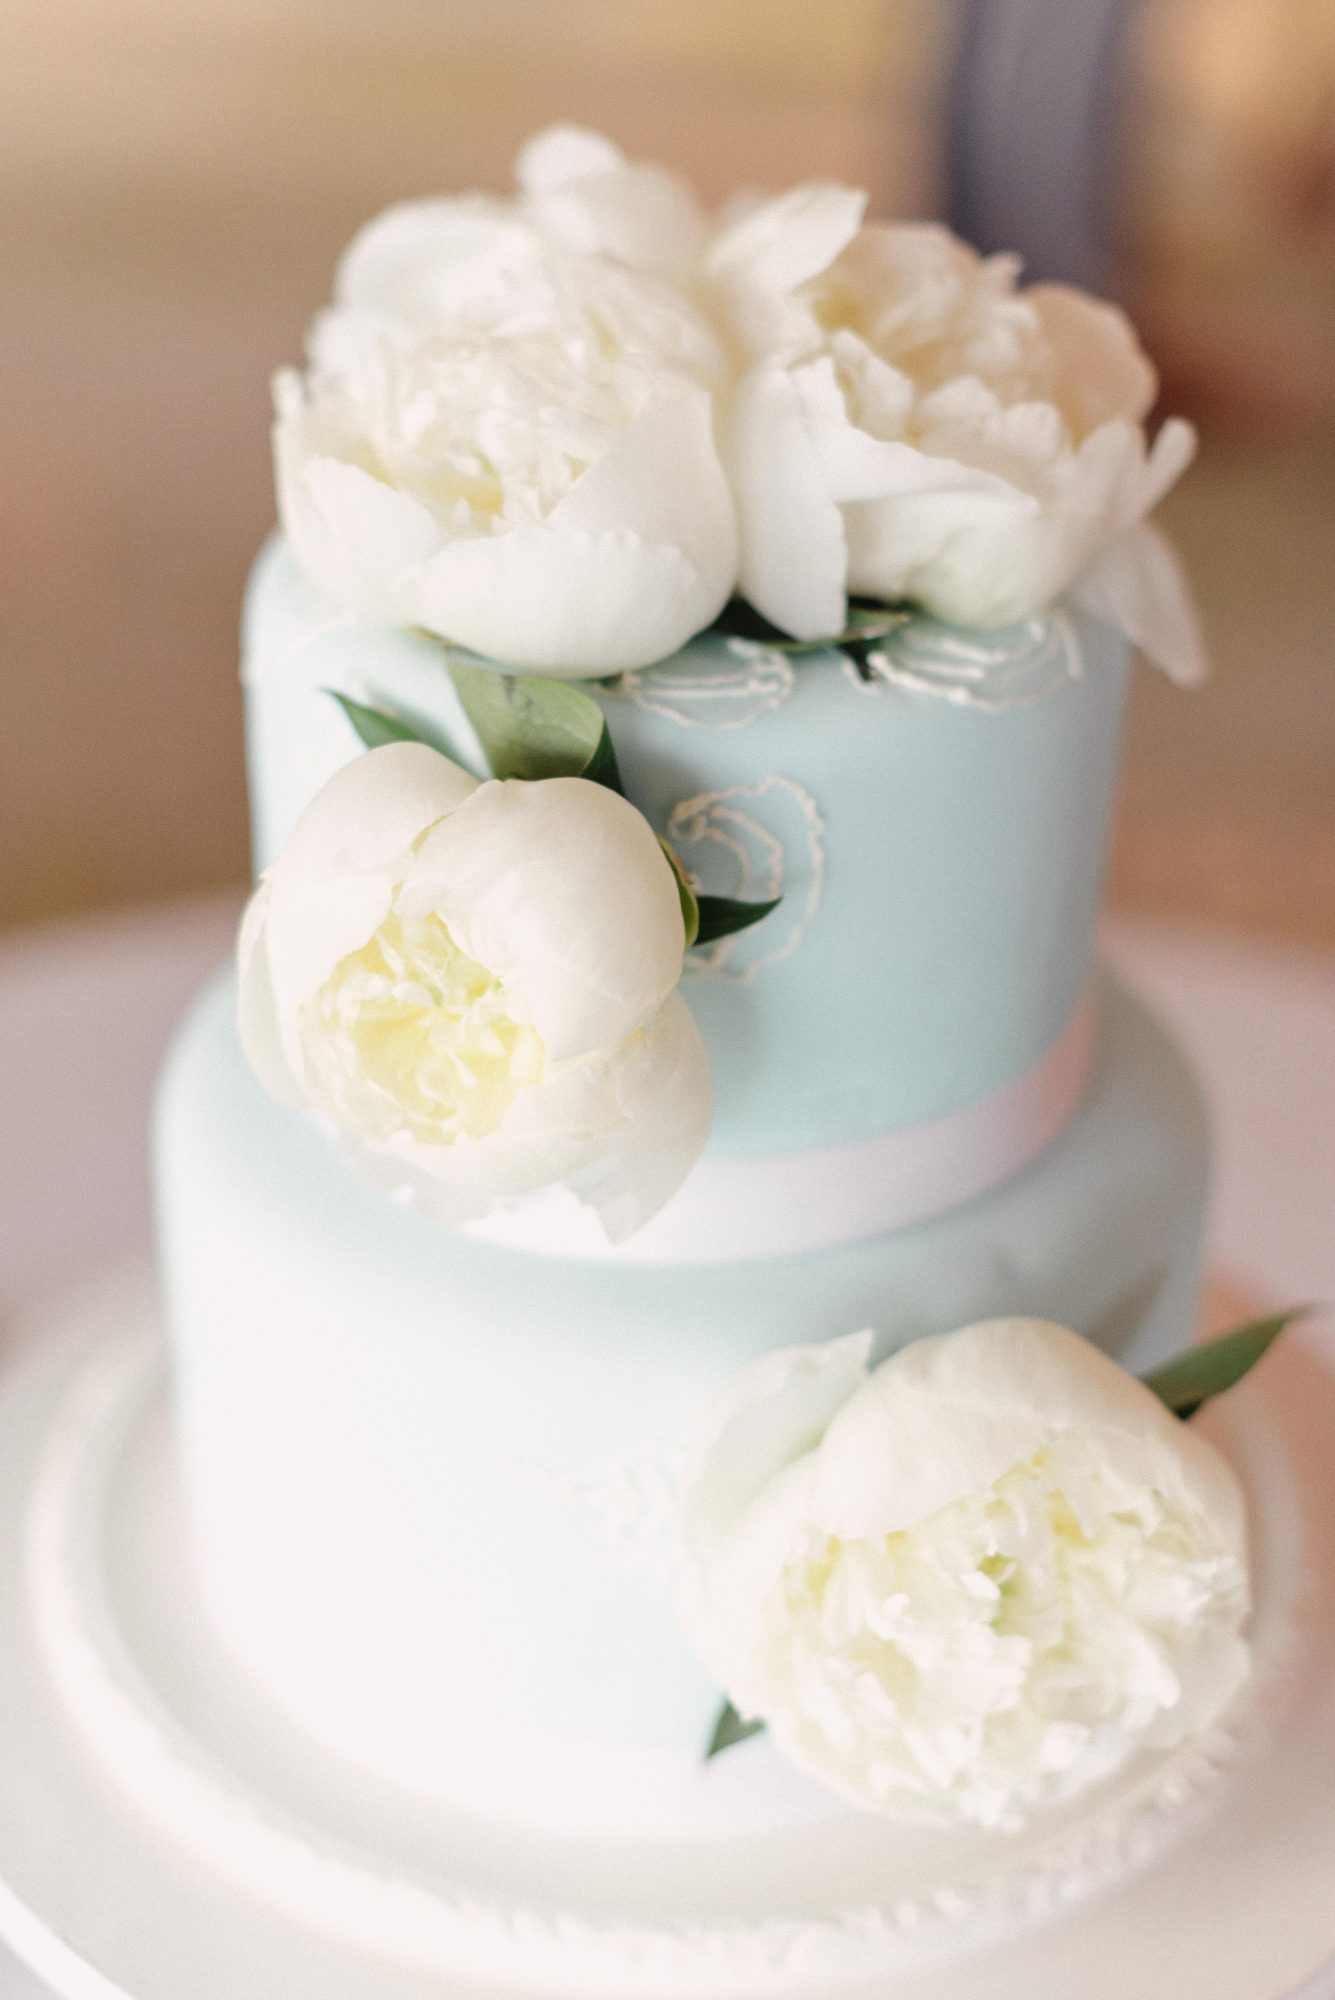 lush cake with flowers